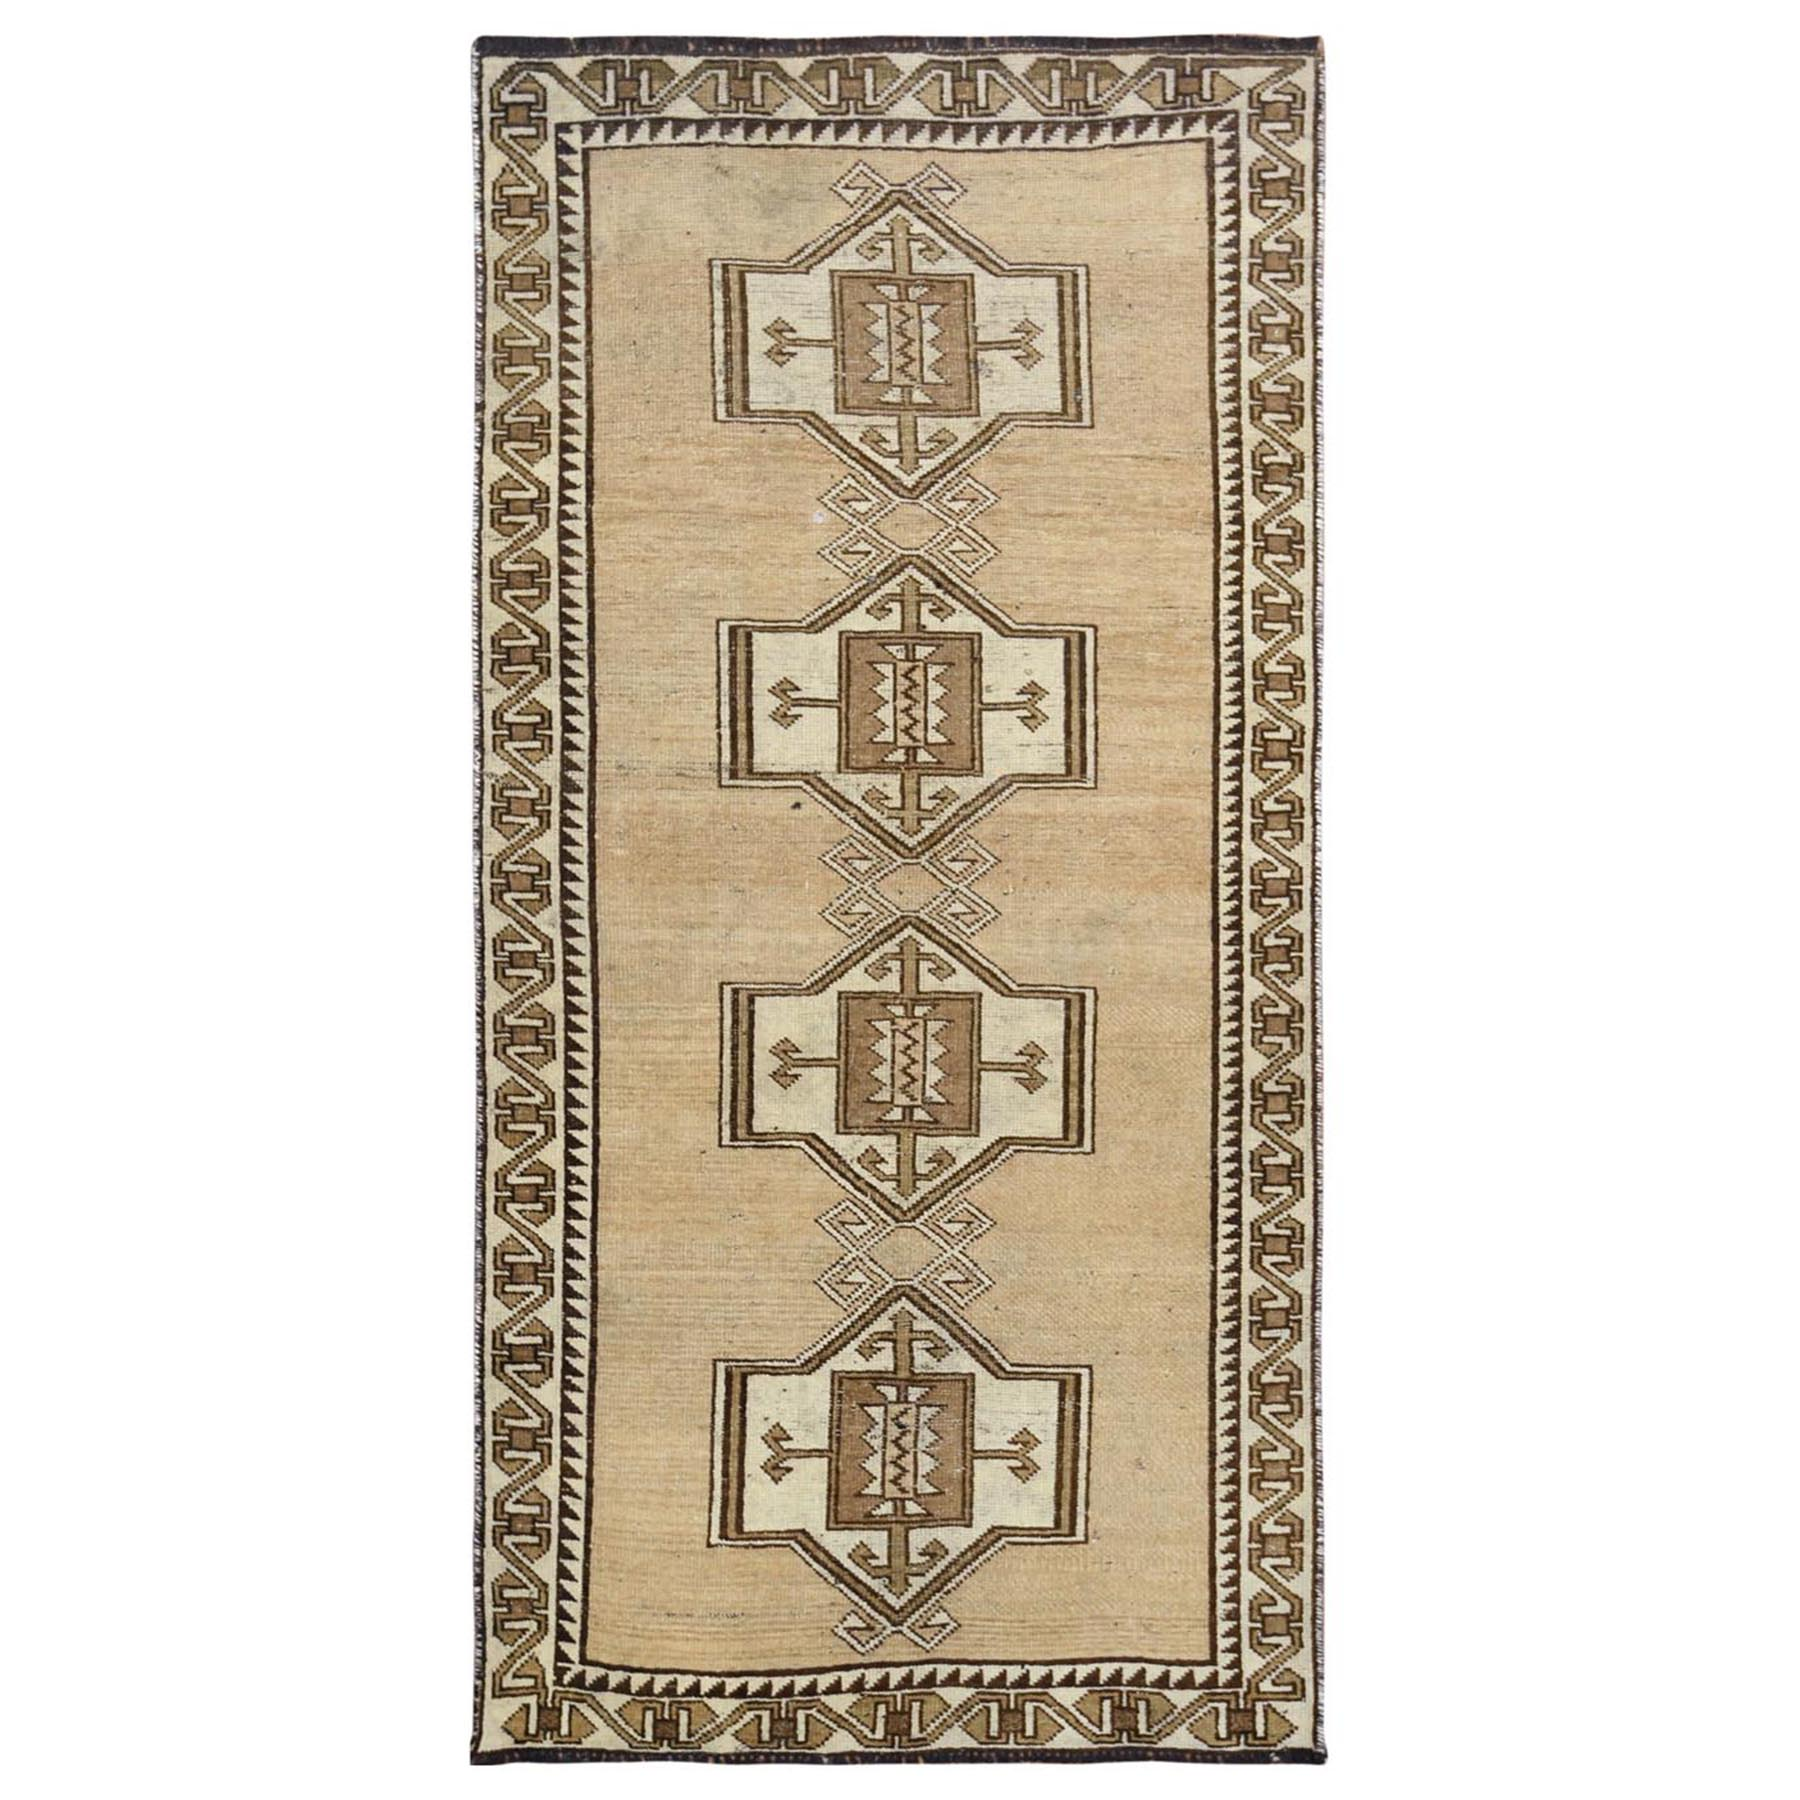 Fetneh Collection And Vintage Overdyed Collection Hand Knotted Beige Rug No: 1115802